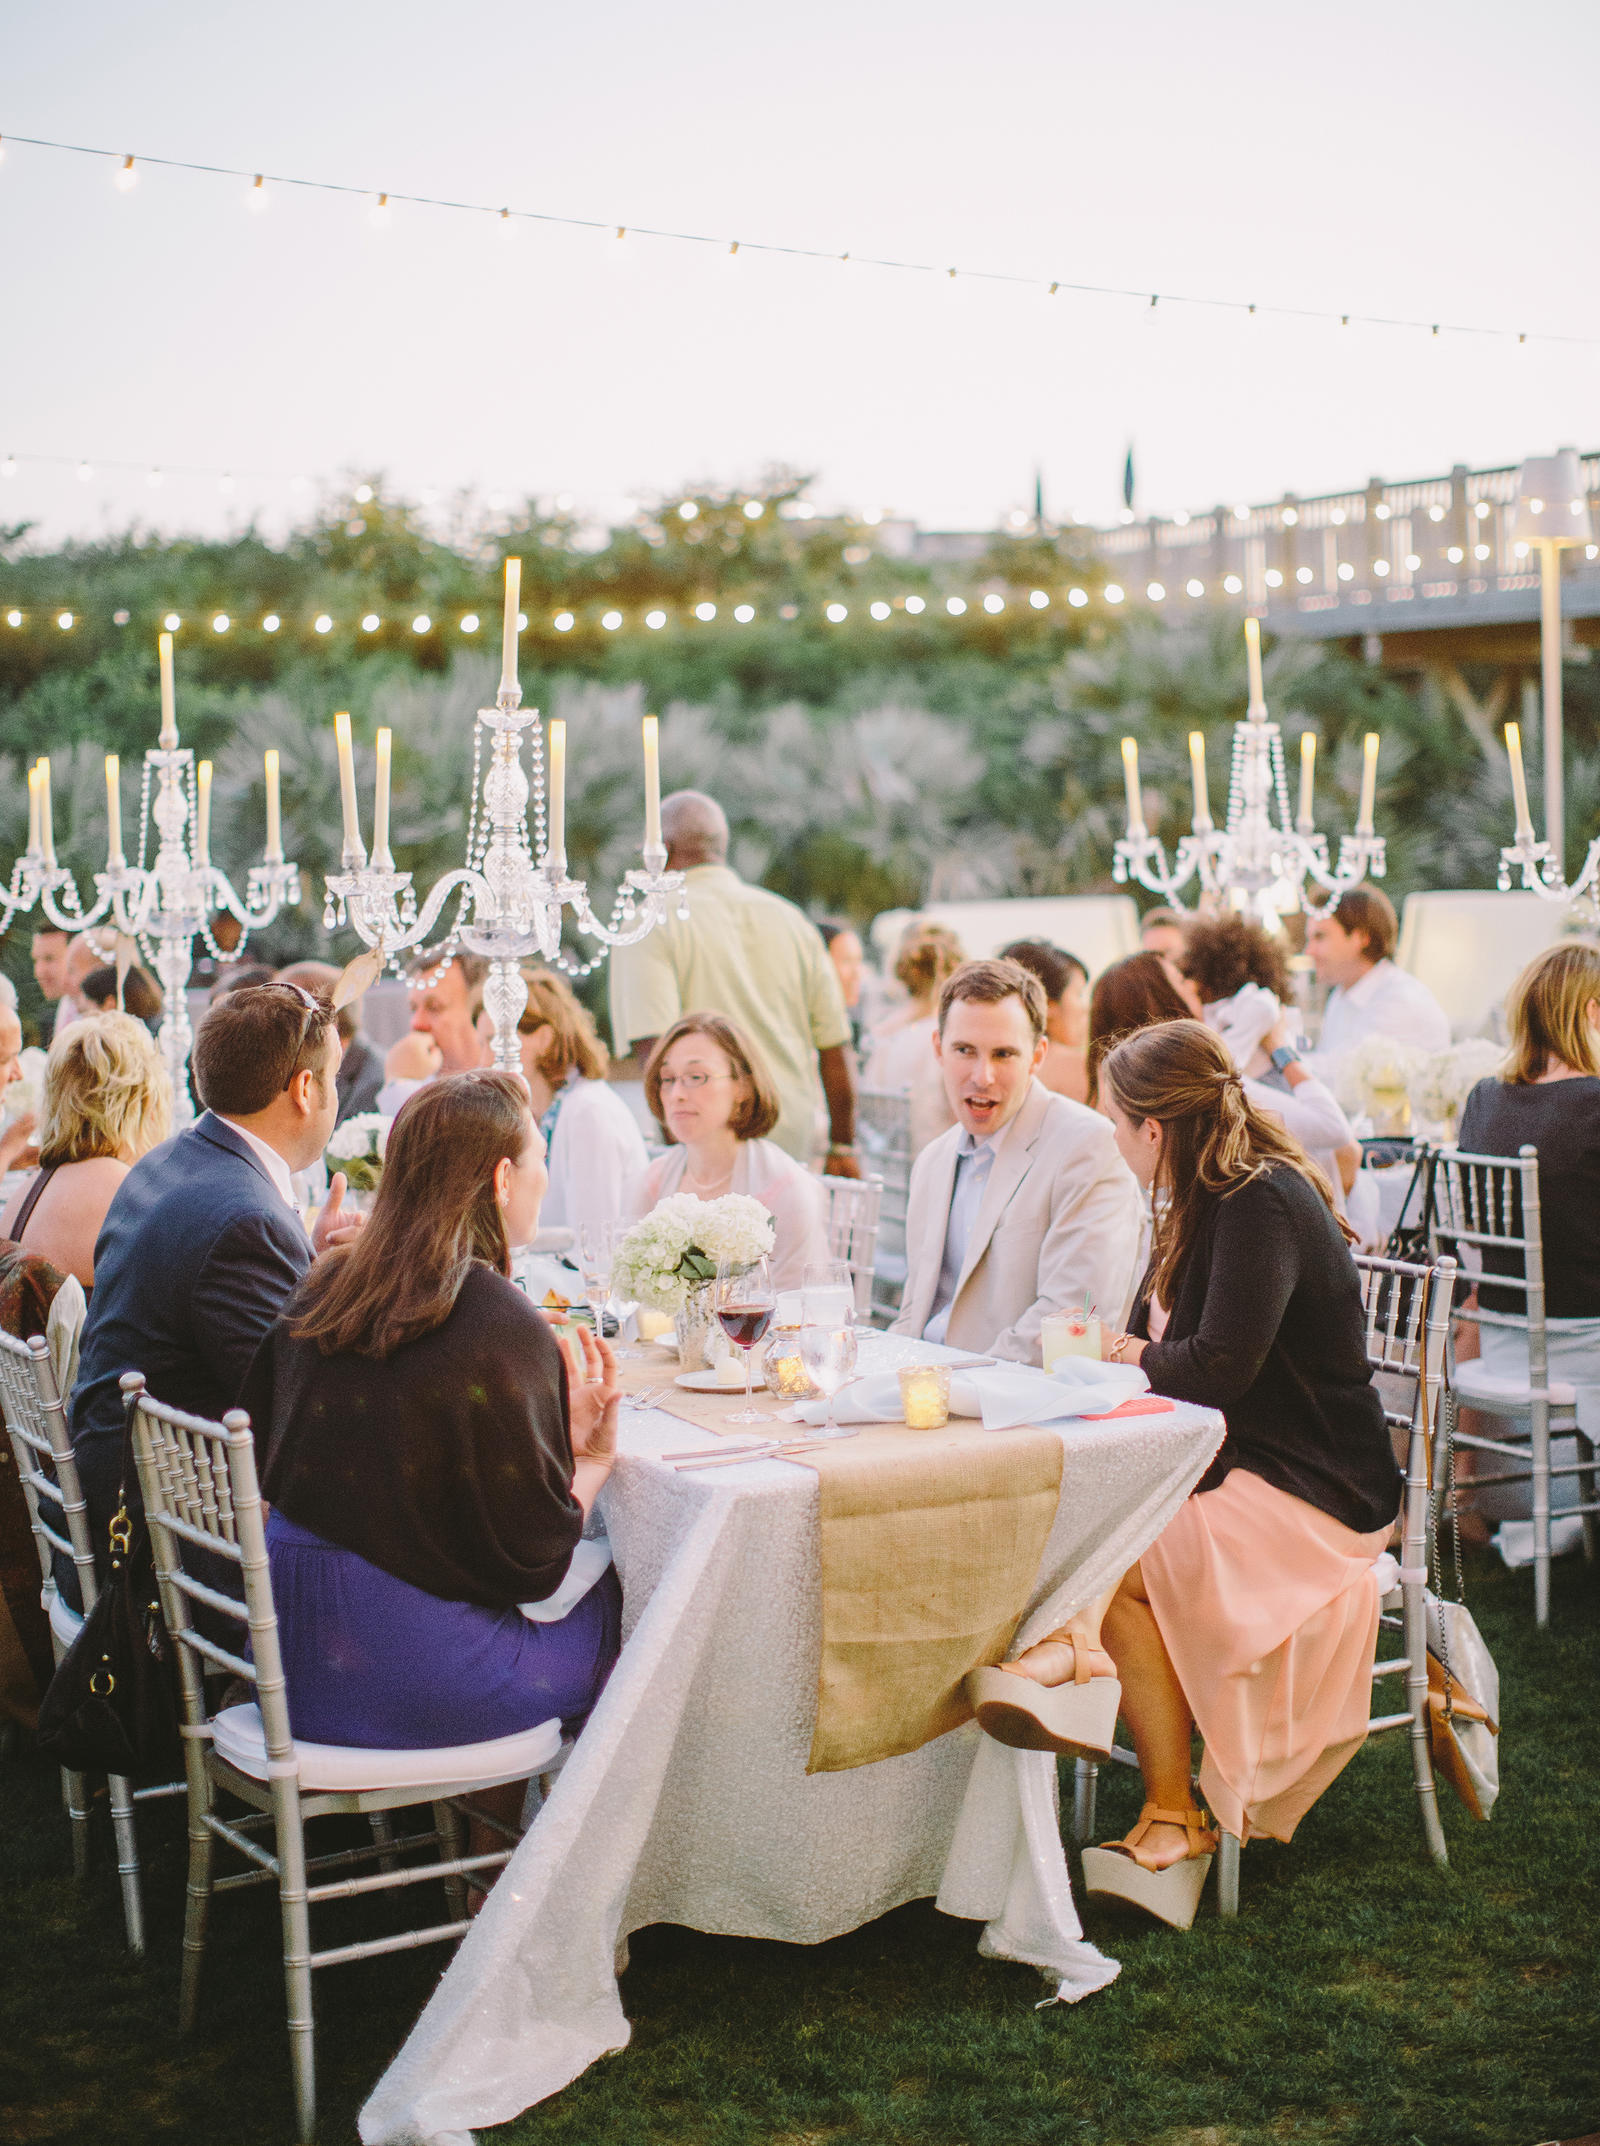 Wedding Photography | An elegant outdoor wedding reception.